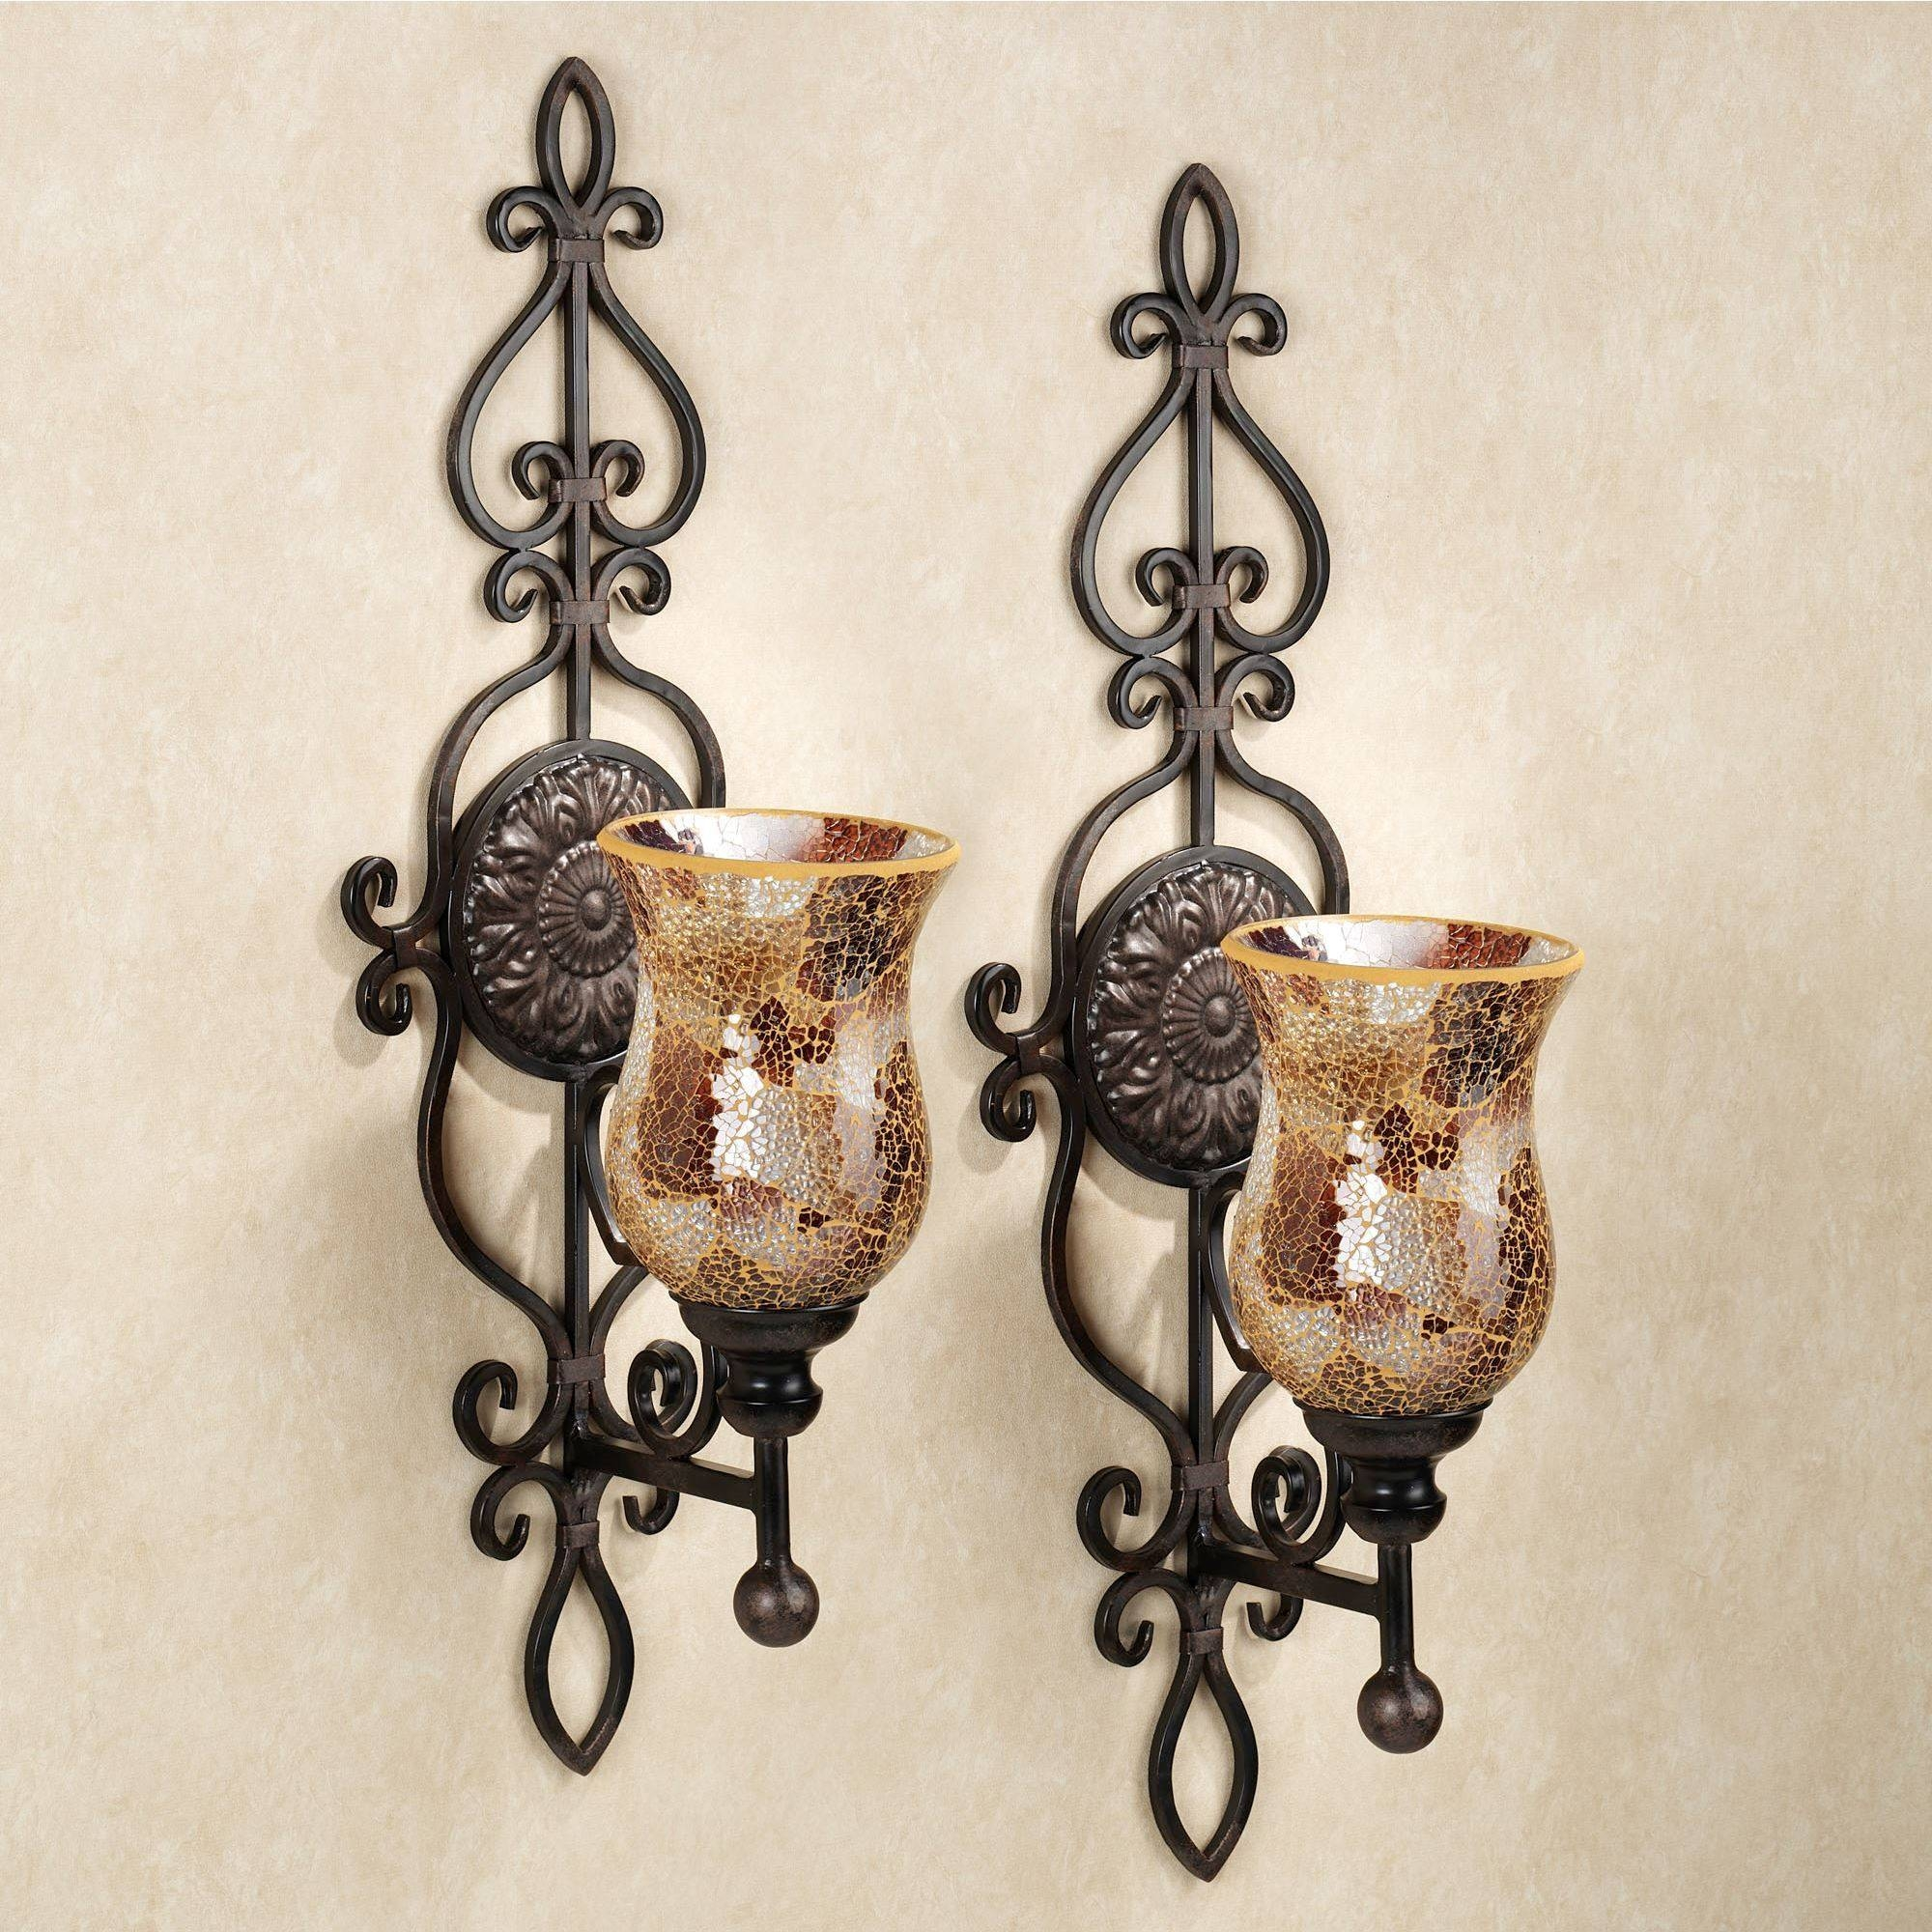 Large Wall Sconces And Candleholders | Touch Of Class With Regard To Newest Metal Wall Art With Candle Holders (View 17 of 20)